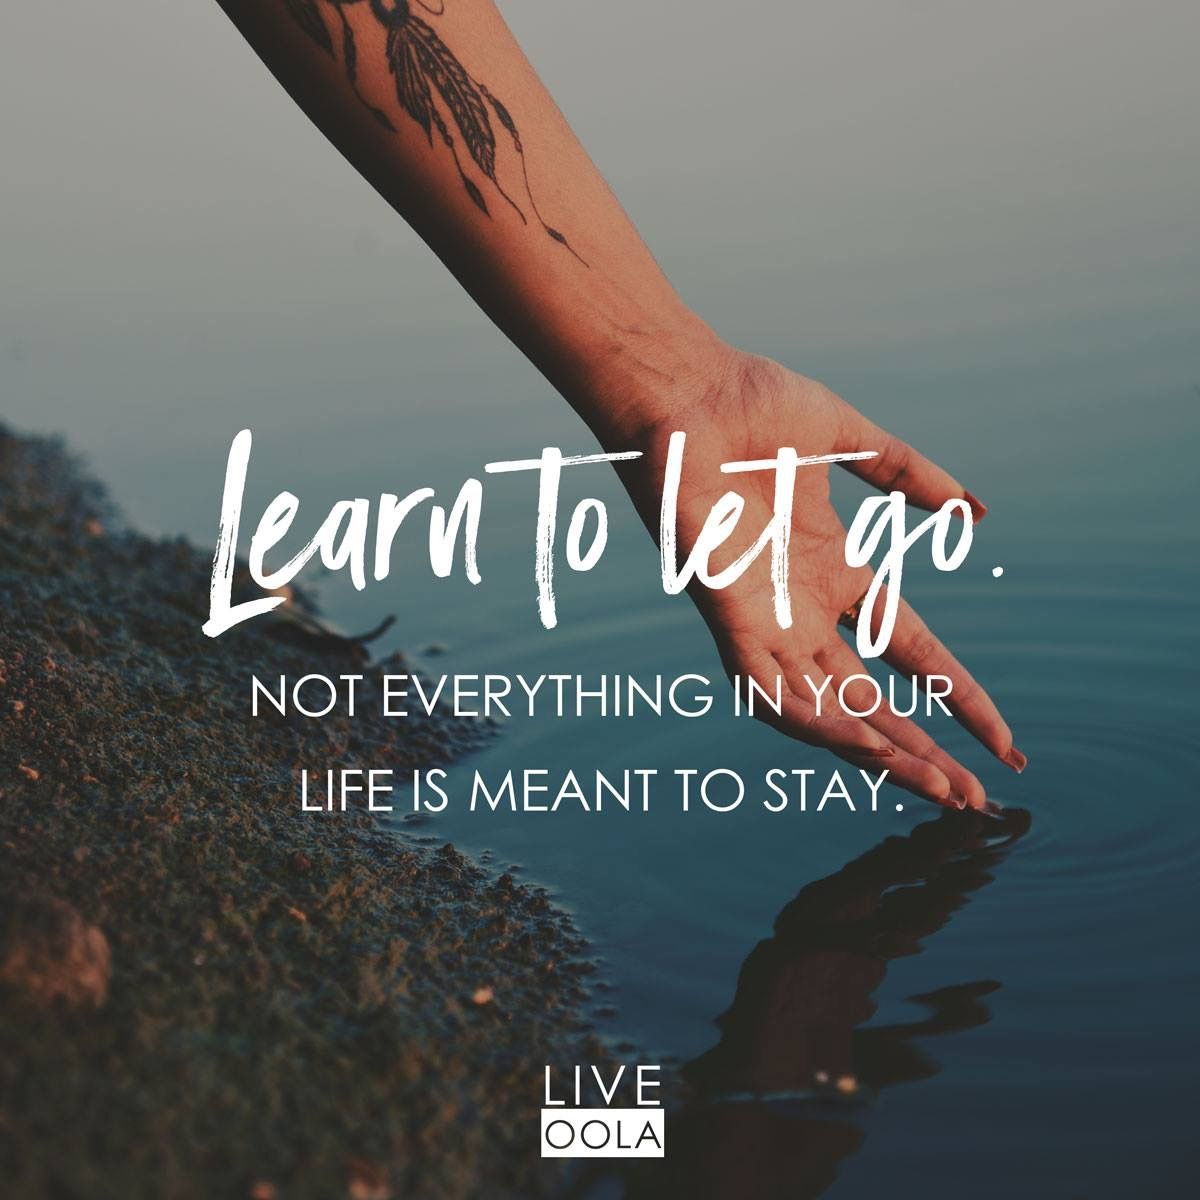 most important lesson is learning how to let go